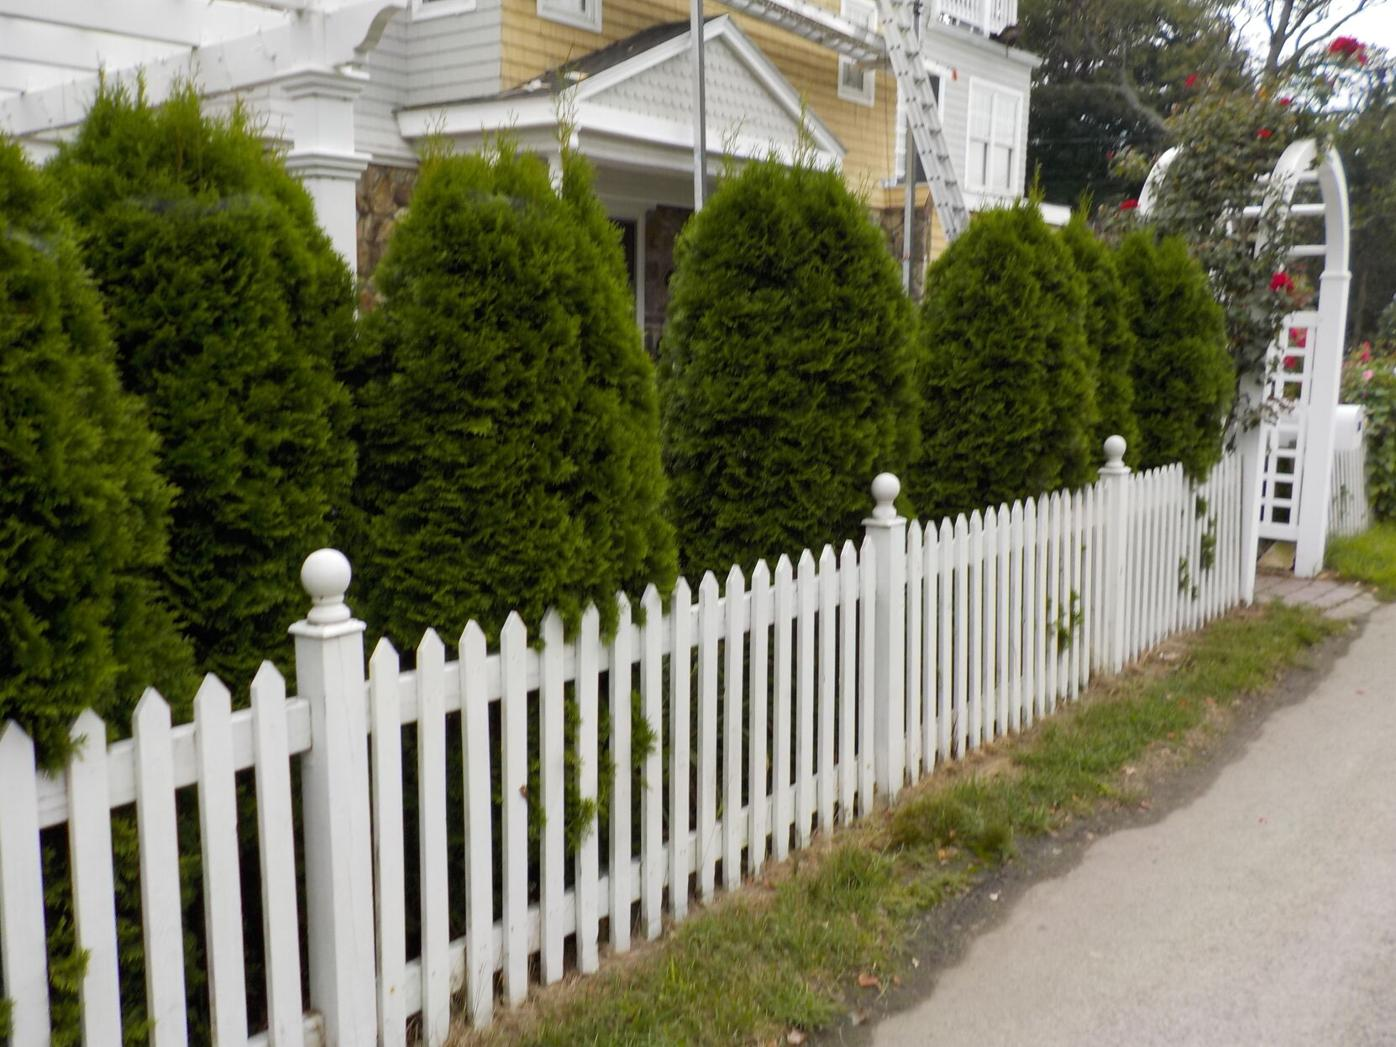 This picket fence is supplemented with a living hedge to block the view from the street.JPG